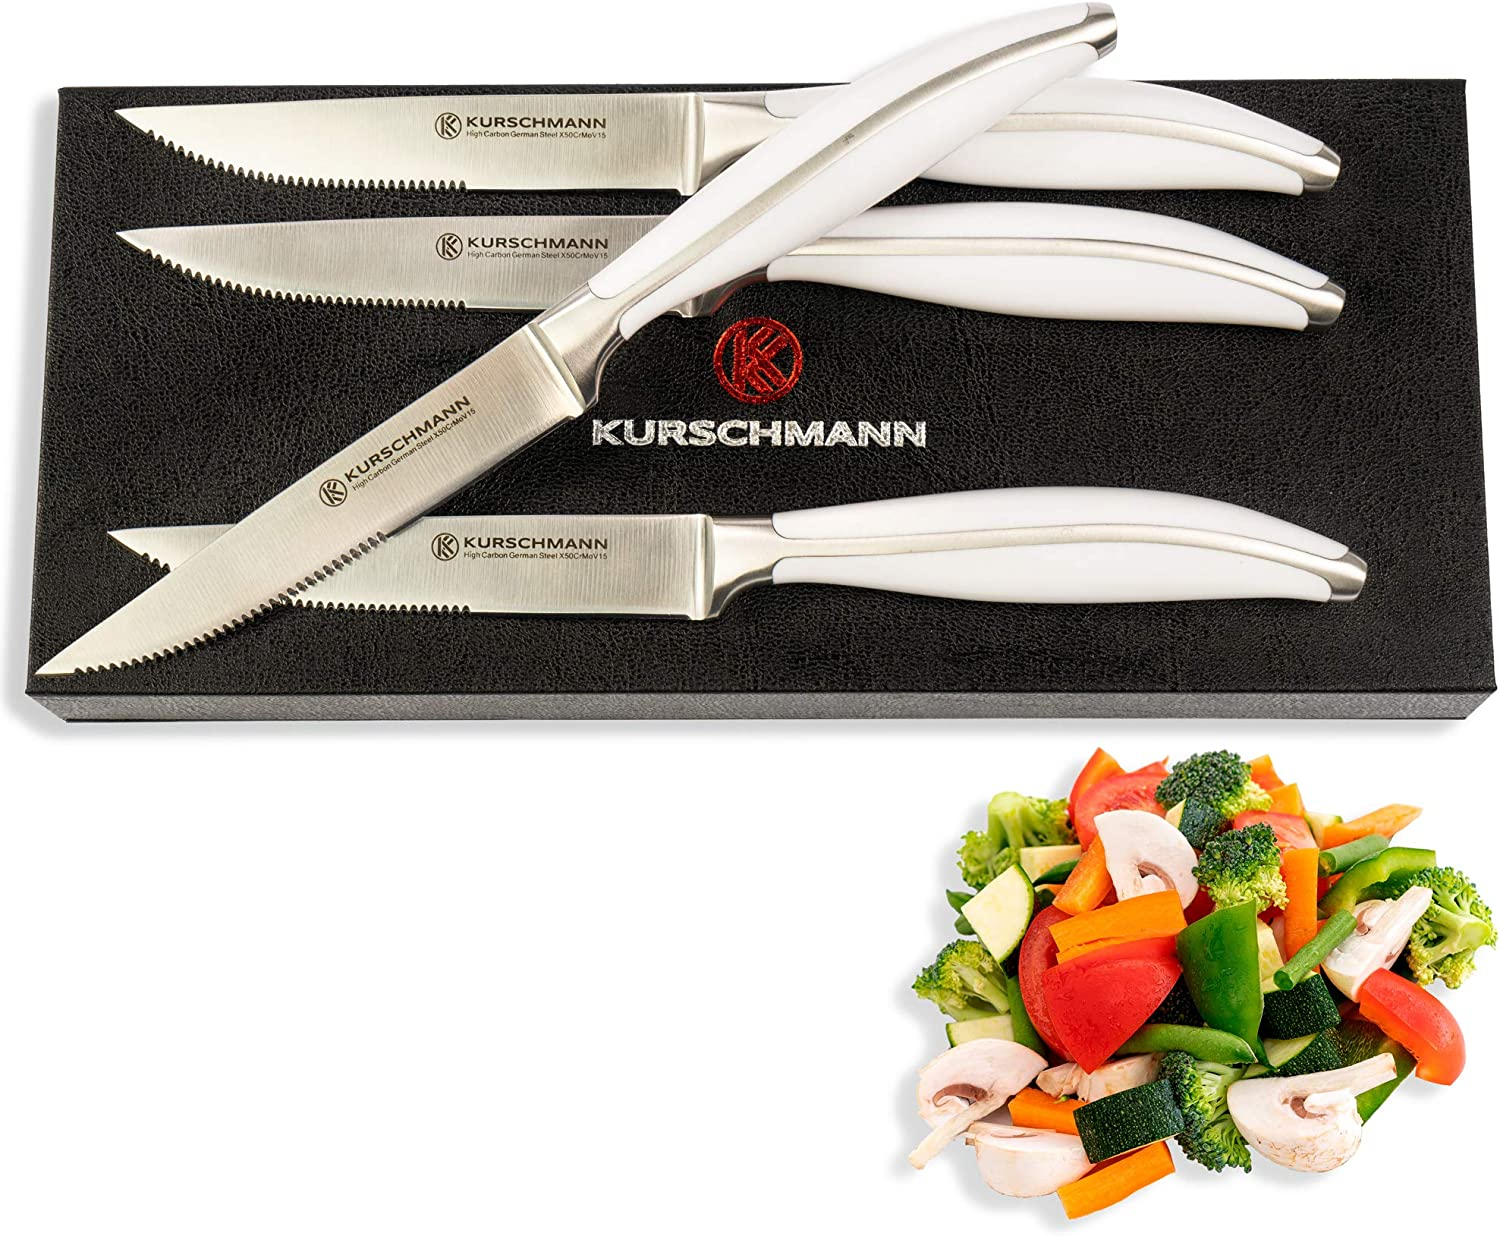 Kurschmann steak knives set of 4 - Arctic White Steak Knife Set in Gift Box with German High-Carbon Stainless Steel Serrated Blades for Easy Cutting, Rivetless Handles, Restaurant-Quality